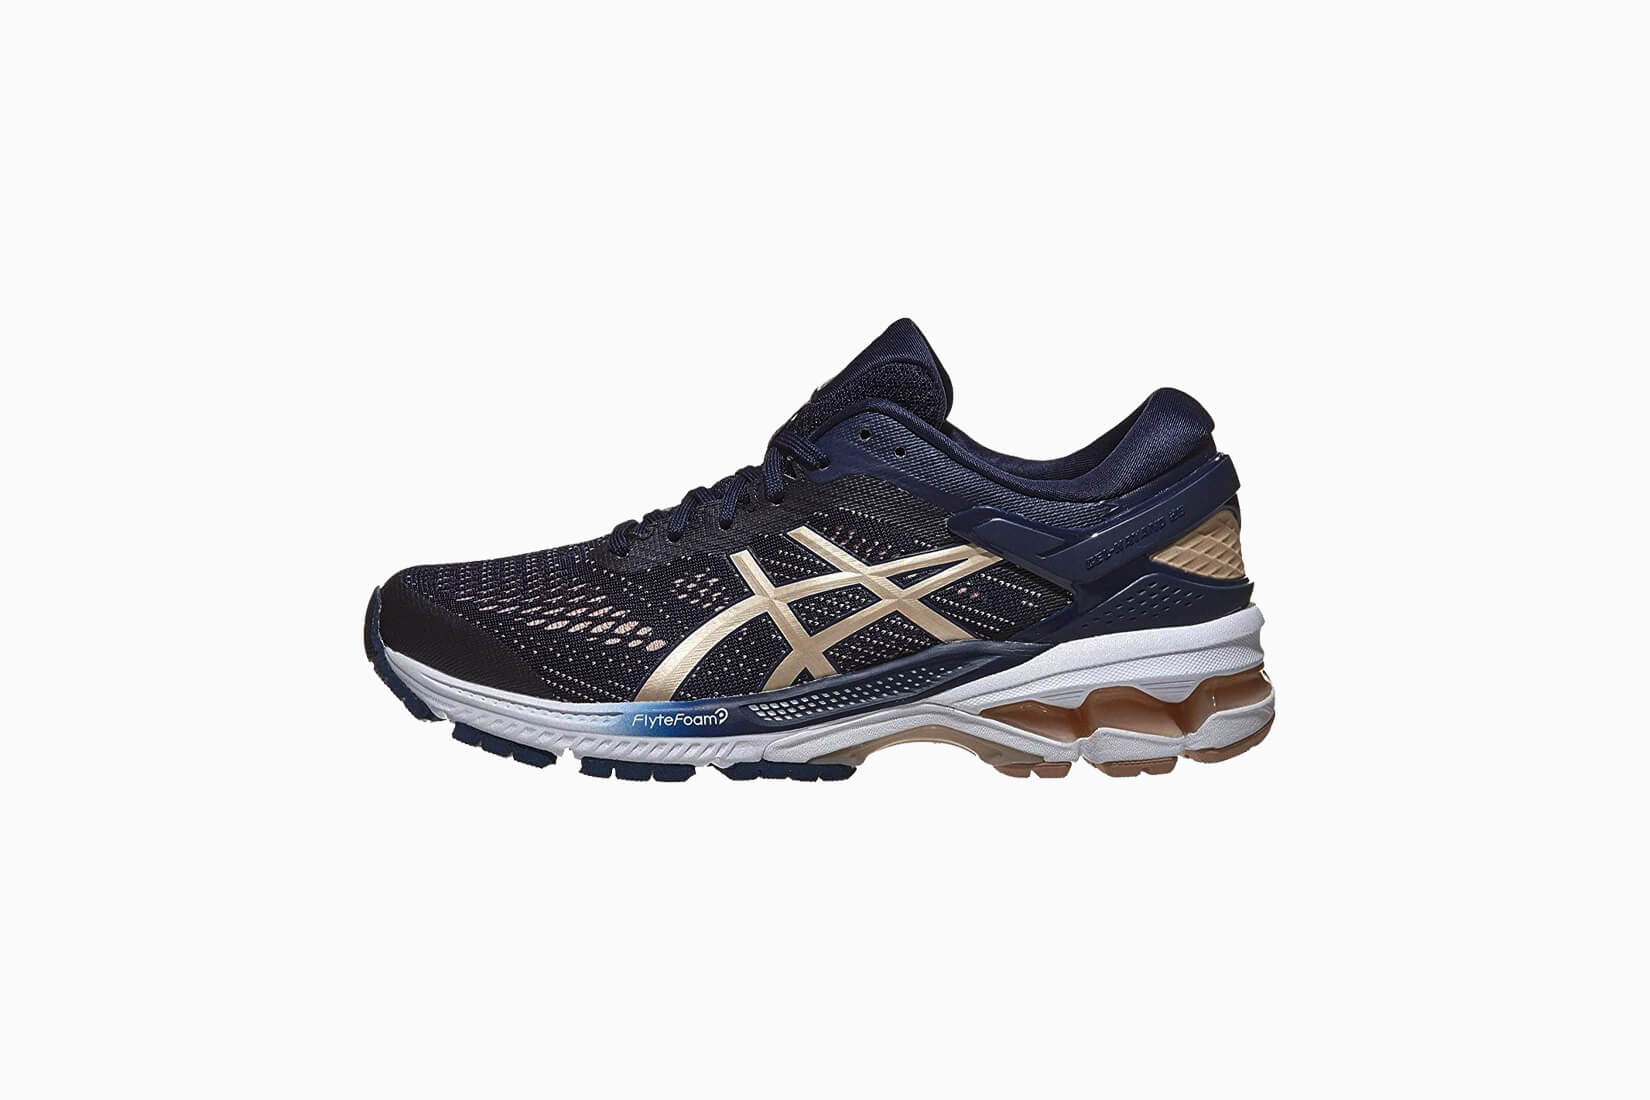 best workout shoes women asics review - Luxe Digital